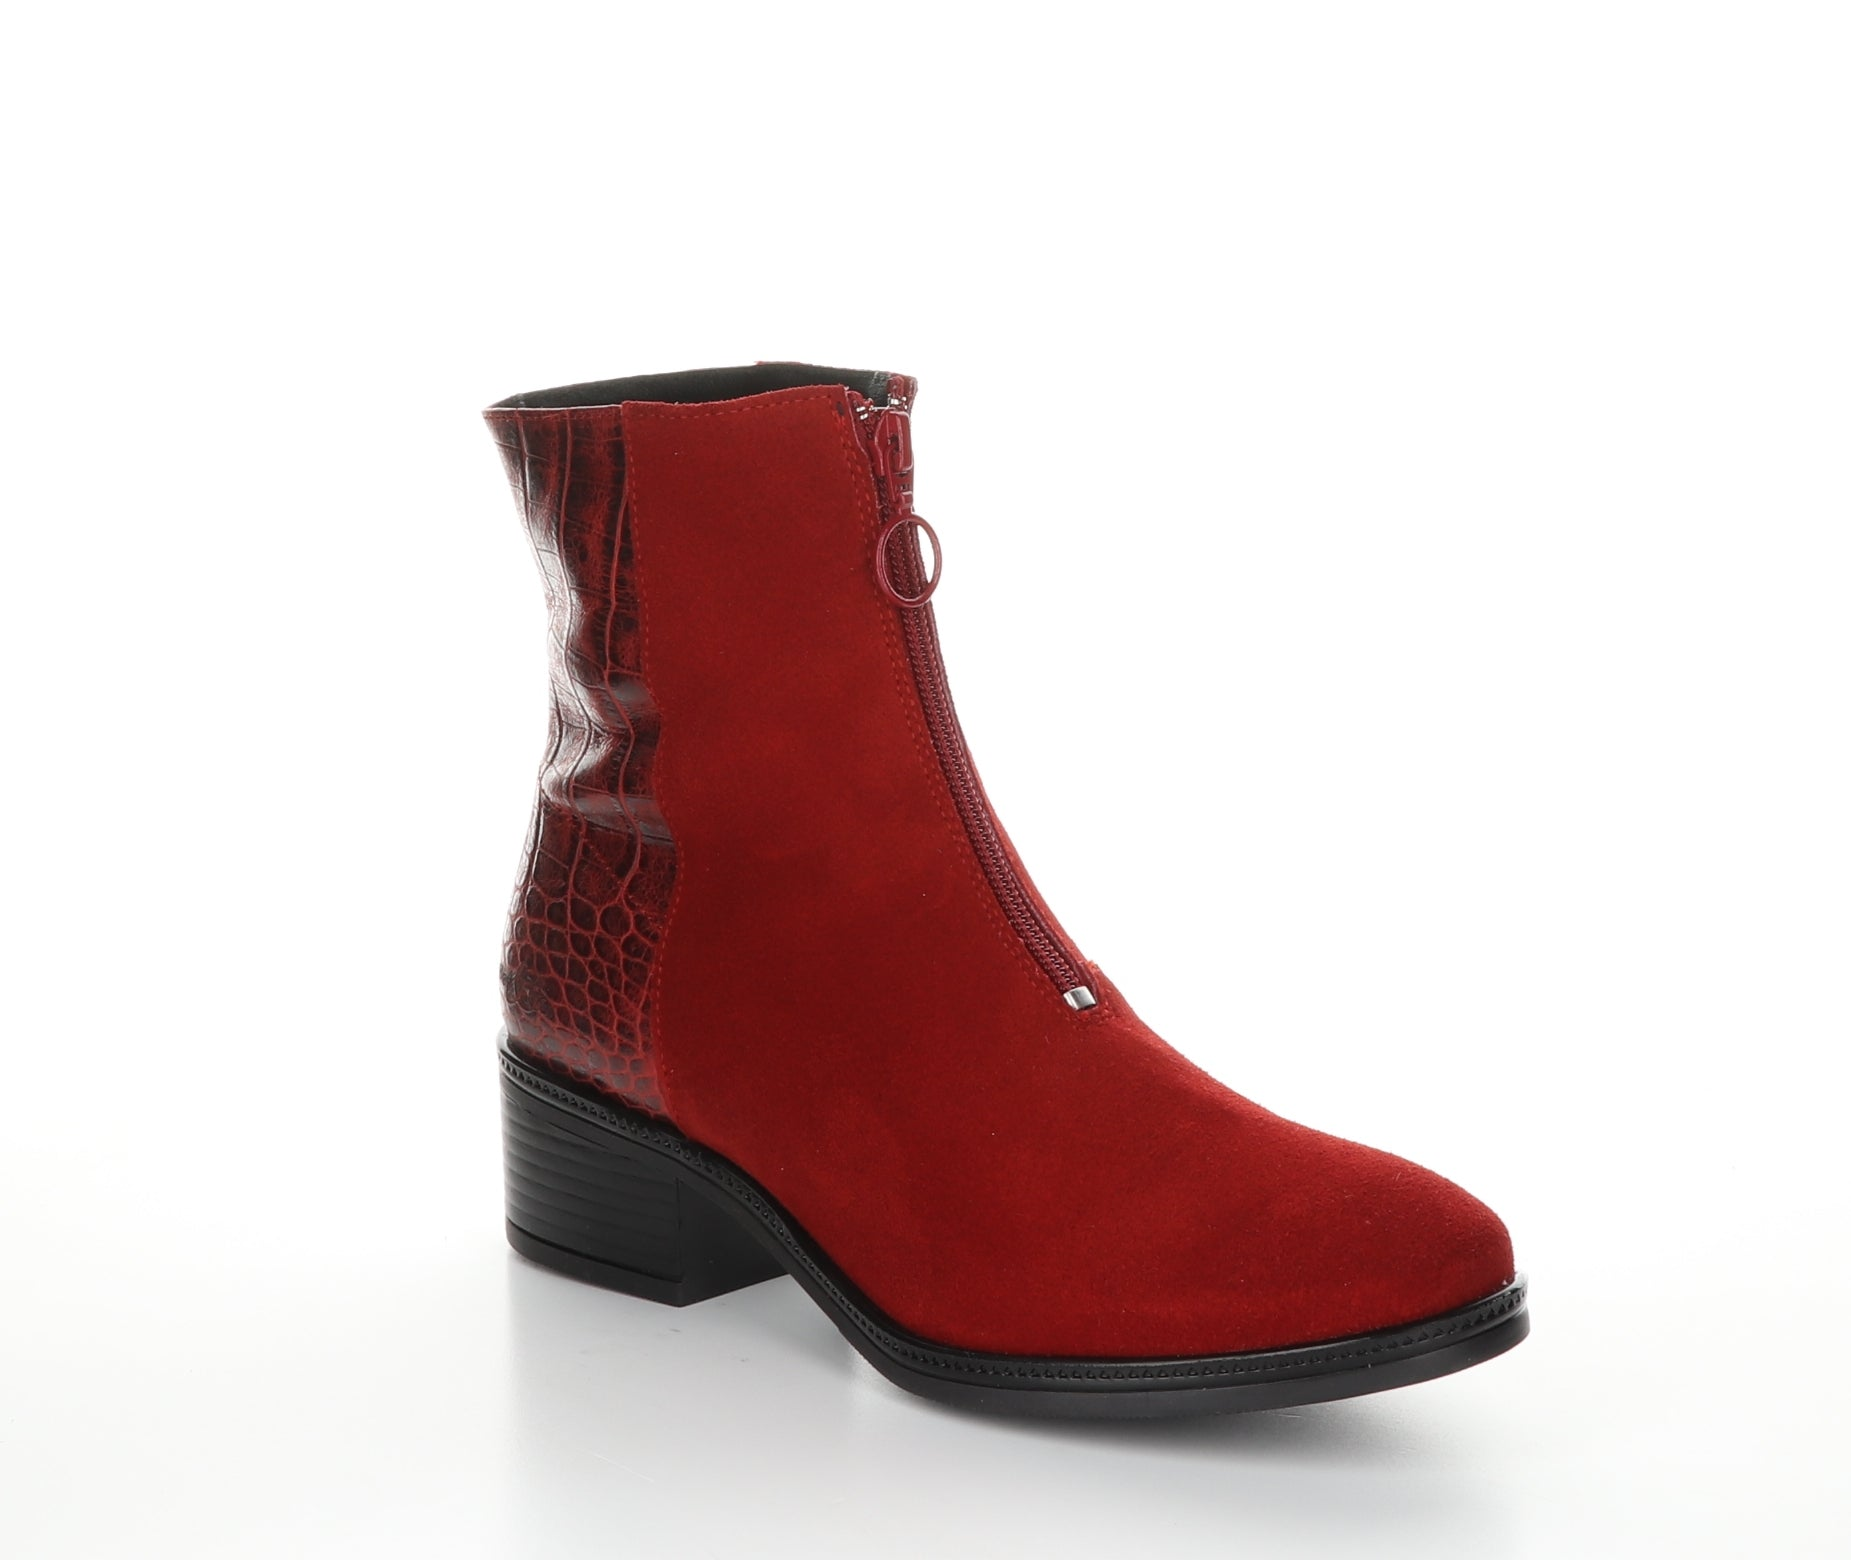 Bos and Co JORDAN Waterproof Boot Red. Ankle height front zip WATERPROOF boot with flexible sole